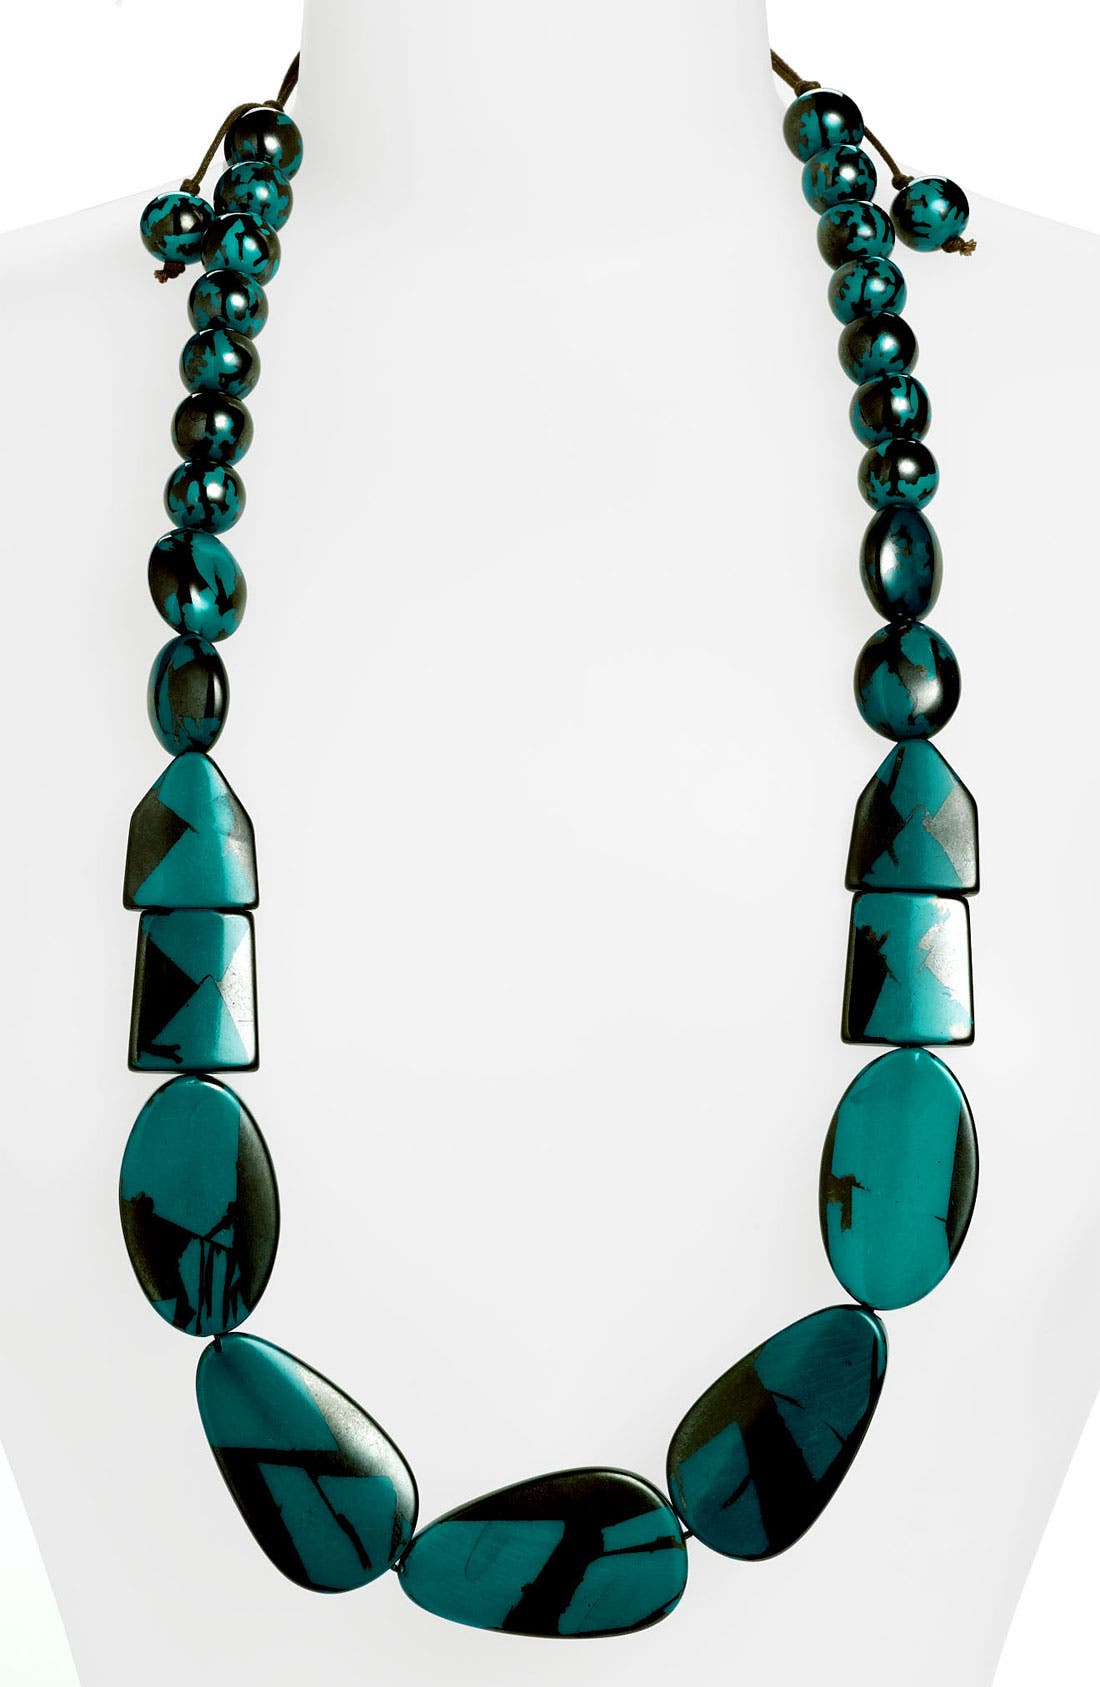 Main Image - Spring Street Design Group 'Tort' Resin Necklace